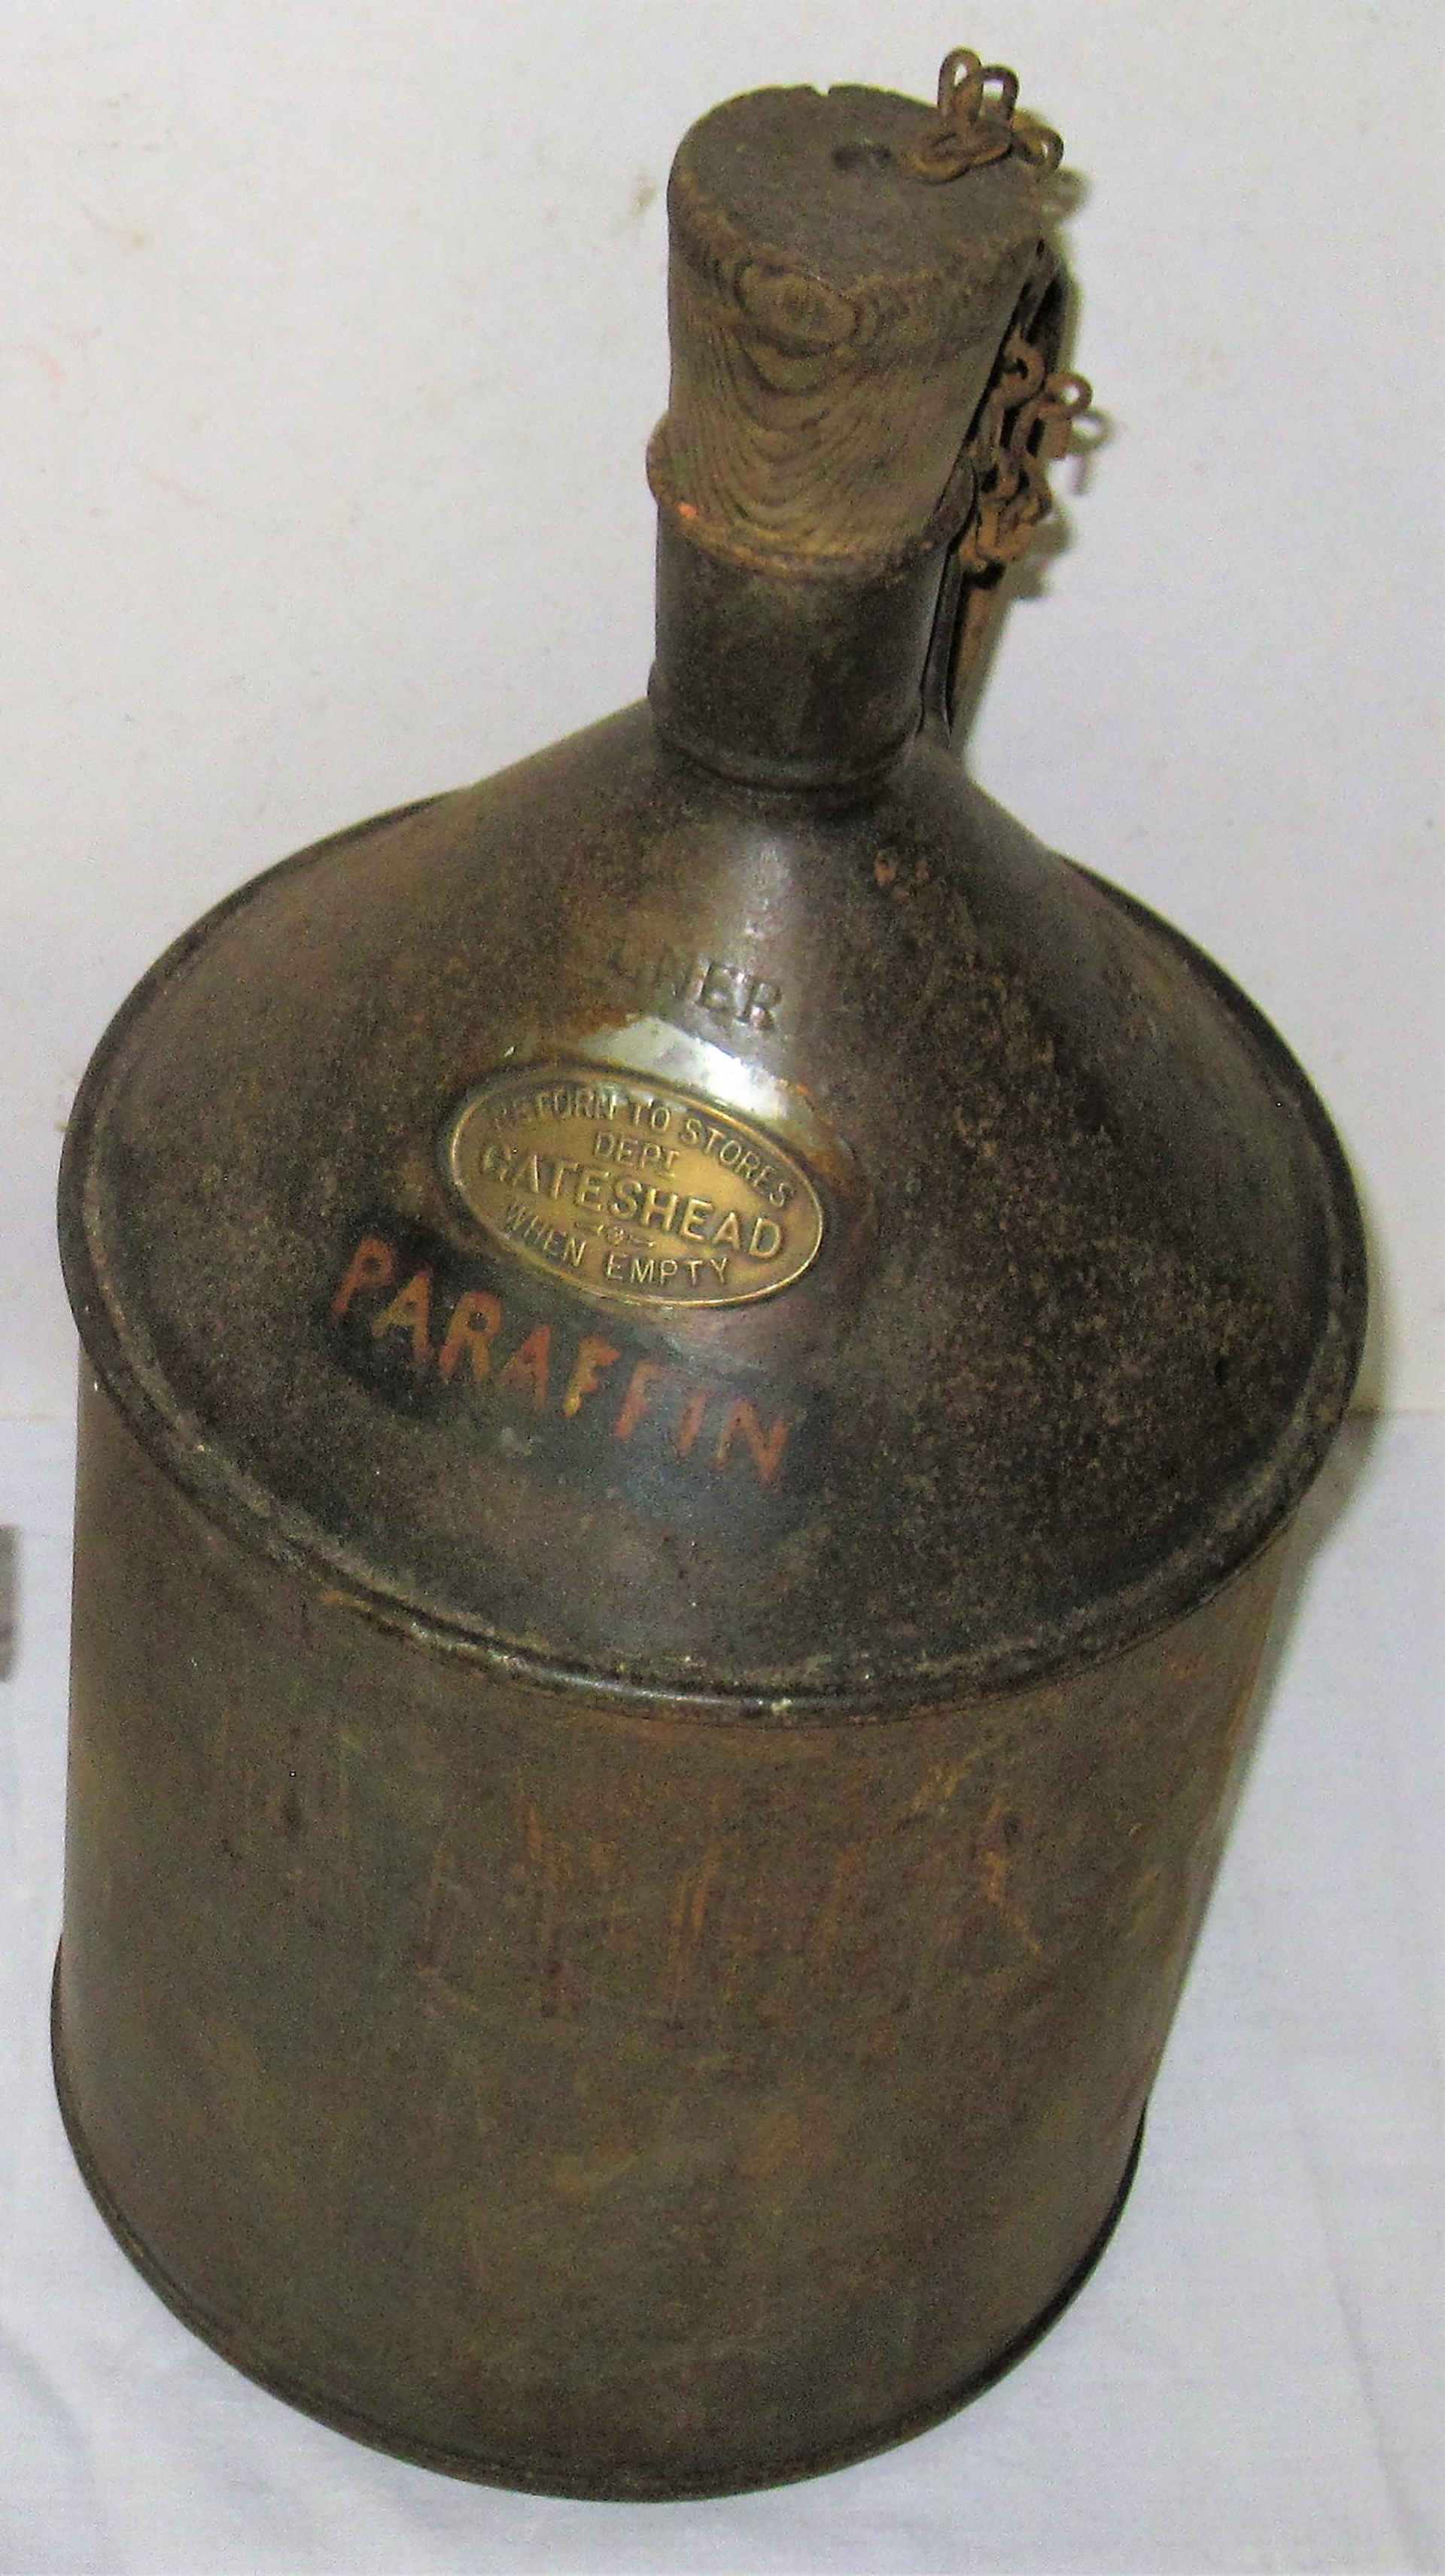 LNER One Gallon Paraffin Can plated, RETURN TO STORES DEPT GATESHEAD WHEN EMPTY. Good original